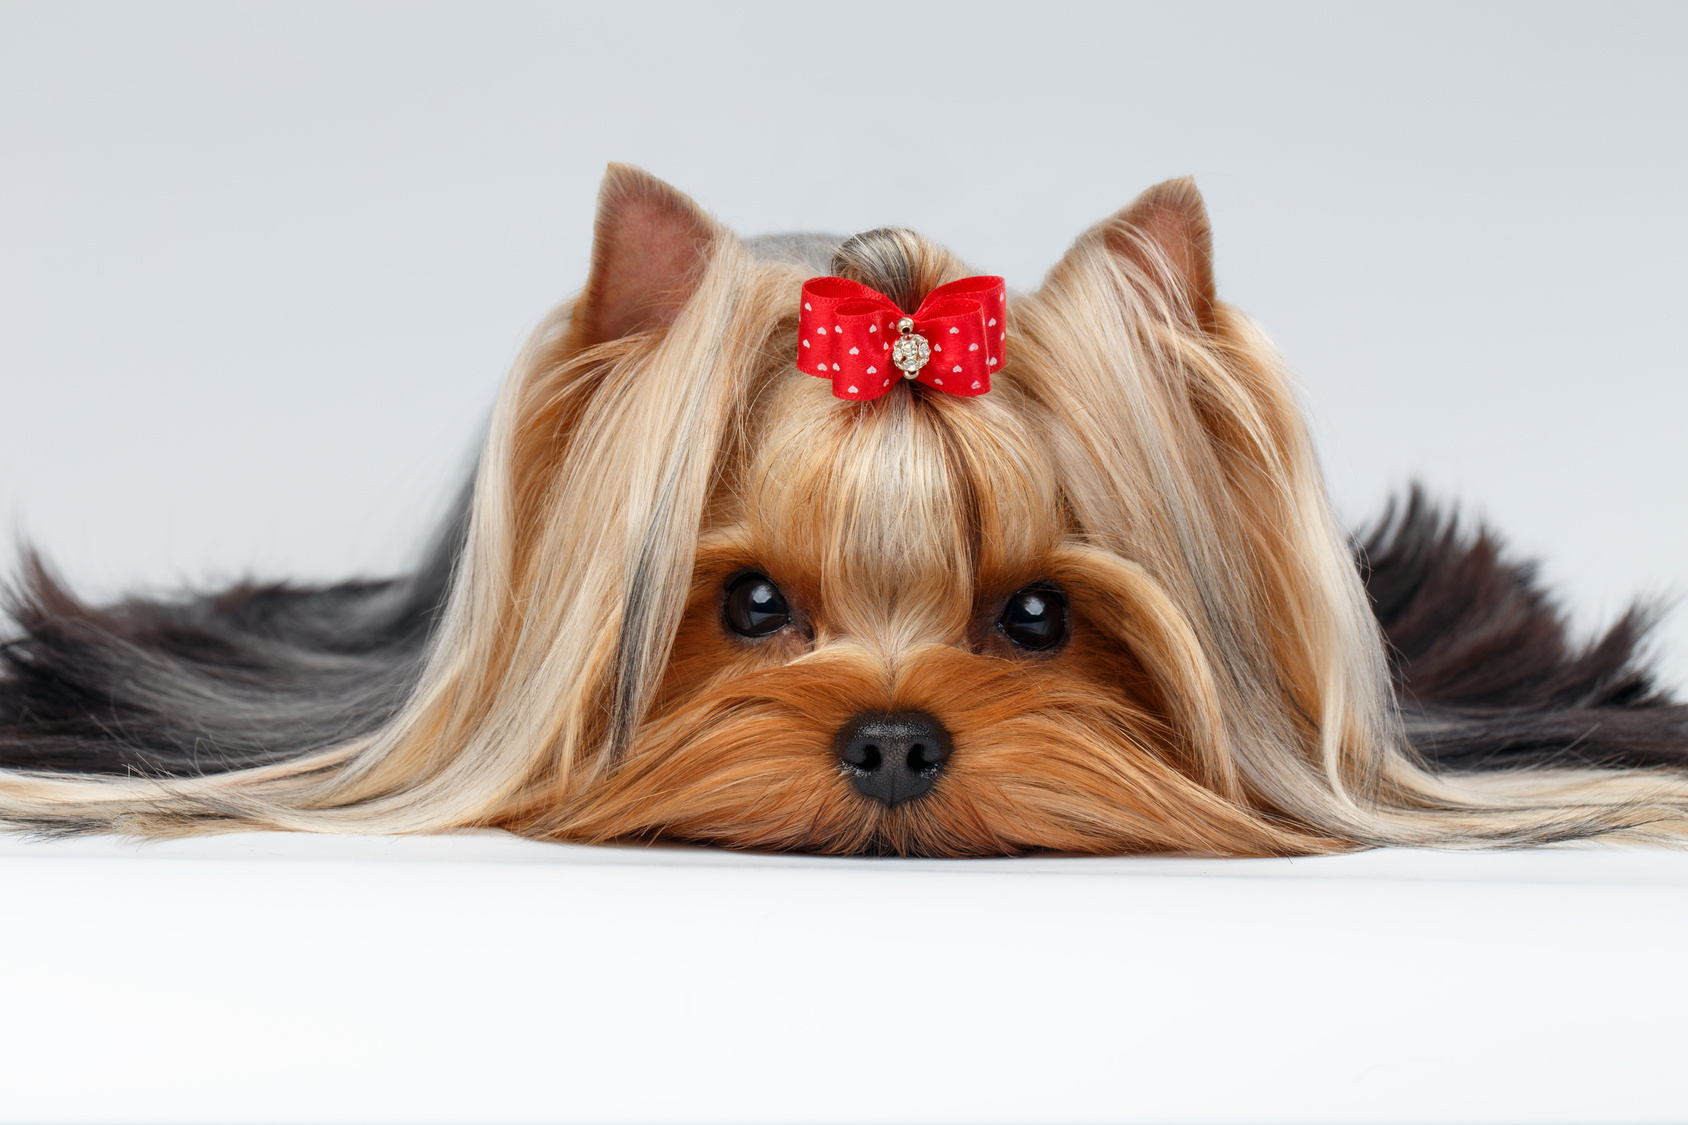 Full-Service Pet Grooming Business - Manager In Place